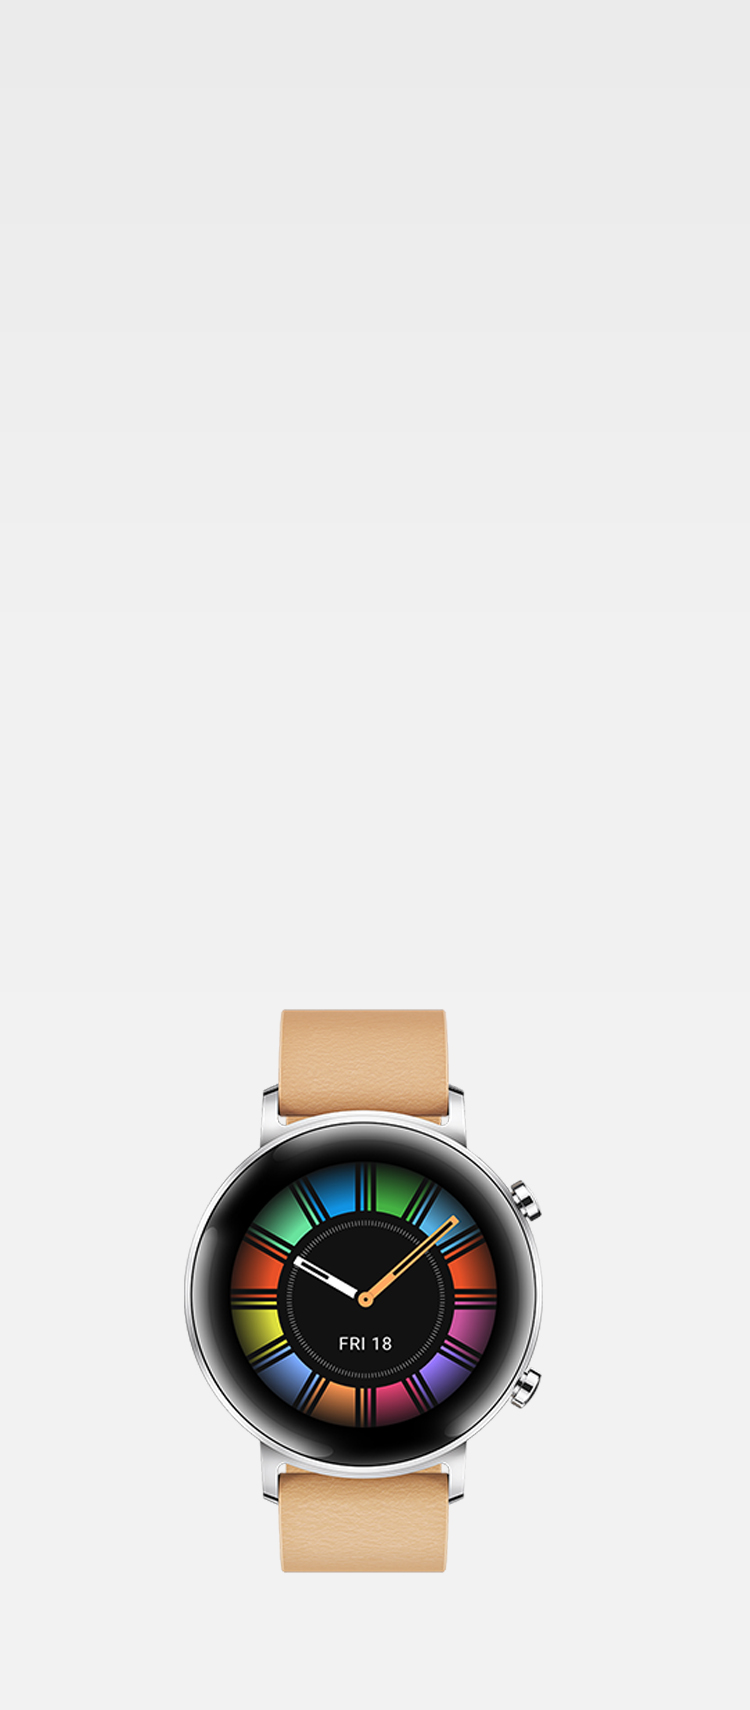 HUAWEI WATCH GT2 New Aesthetic Design